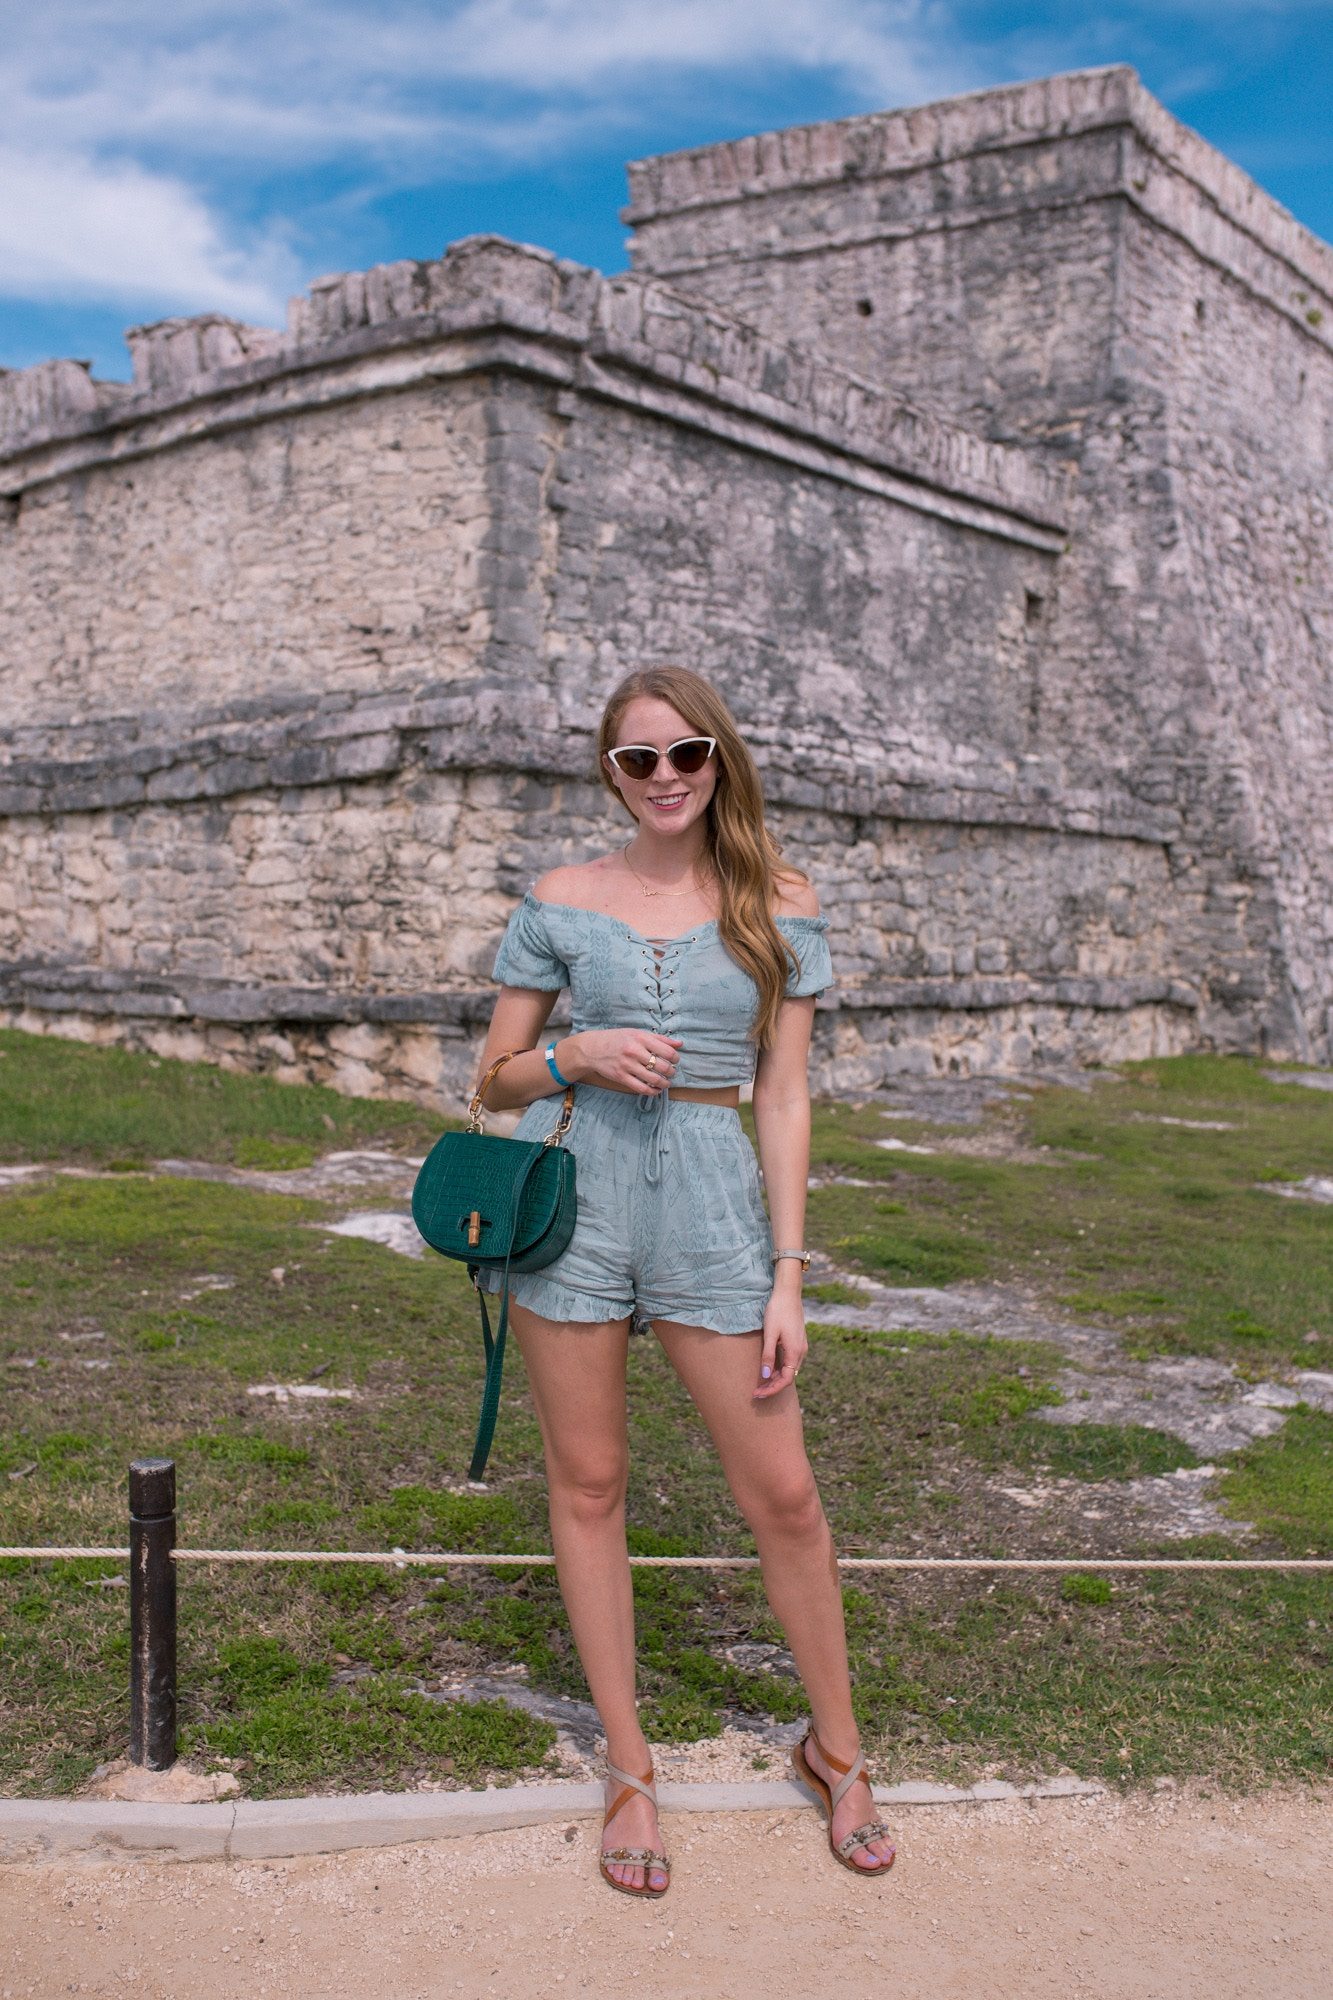 What I wore to visit the Tulum archeological site. This crop top and shorts set from Forever 21 is so light and easy to wear! I paired it with a bamboo bag and white sunglasses.